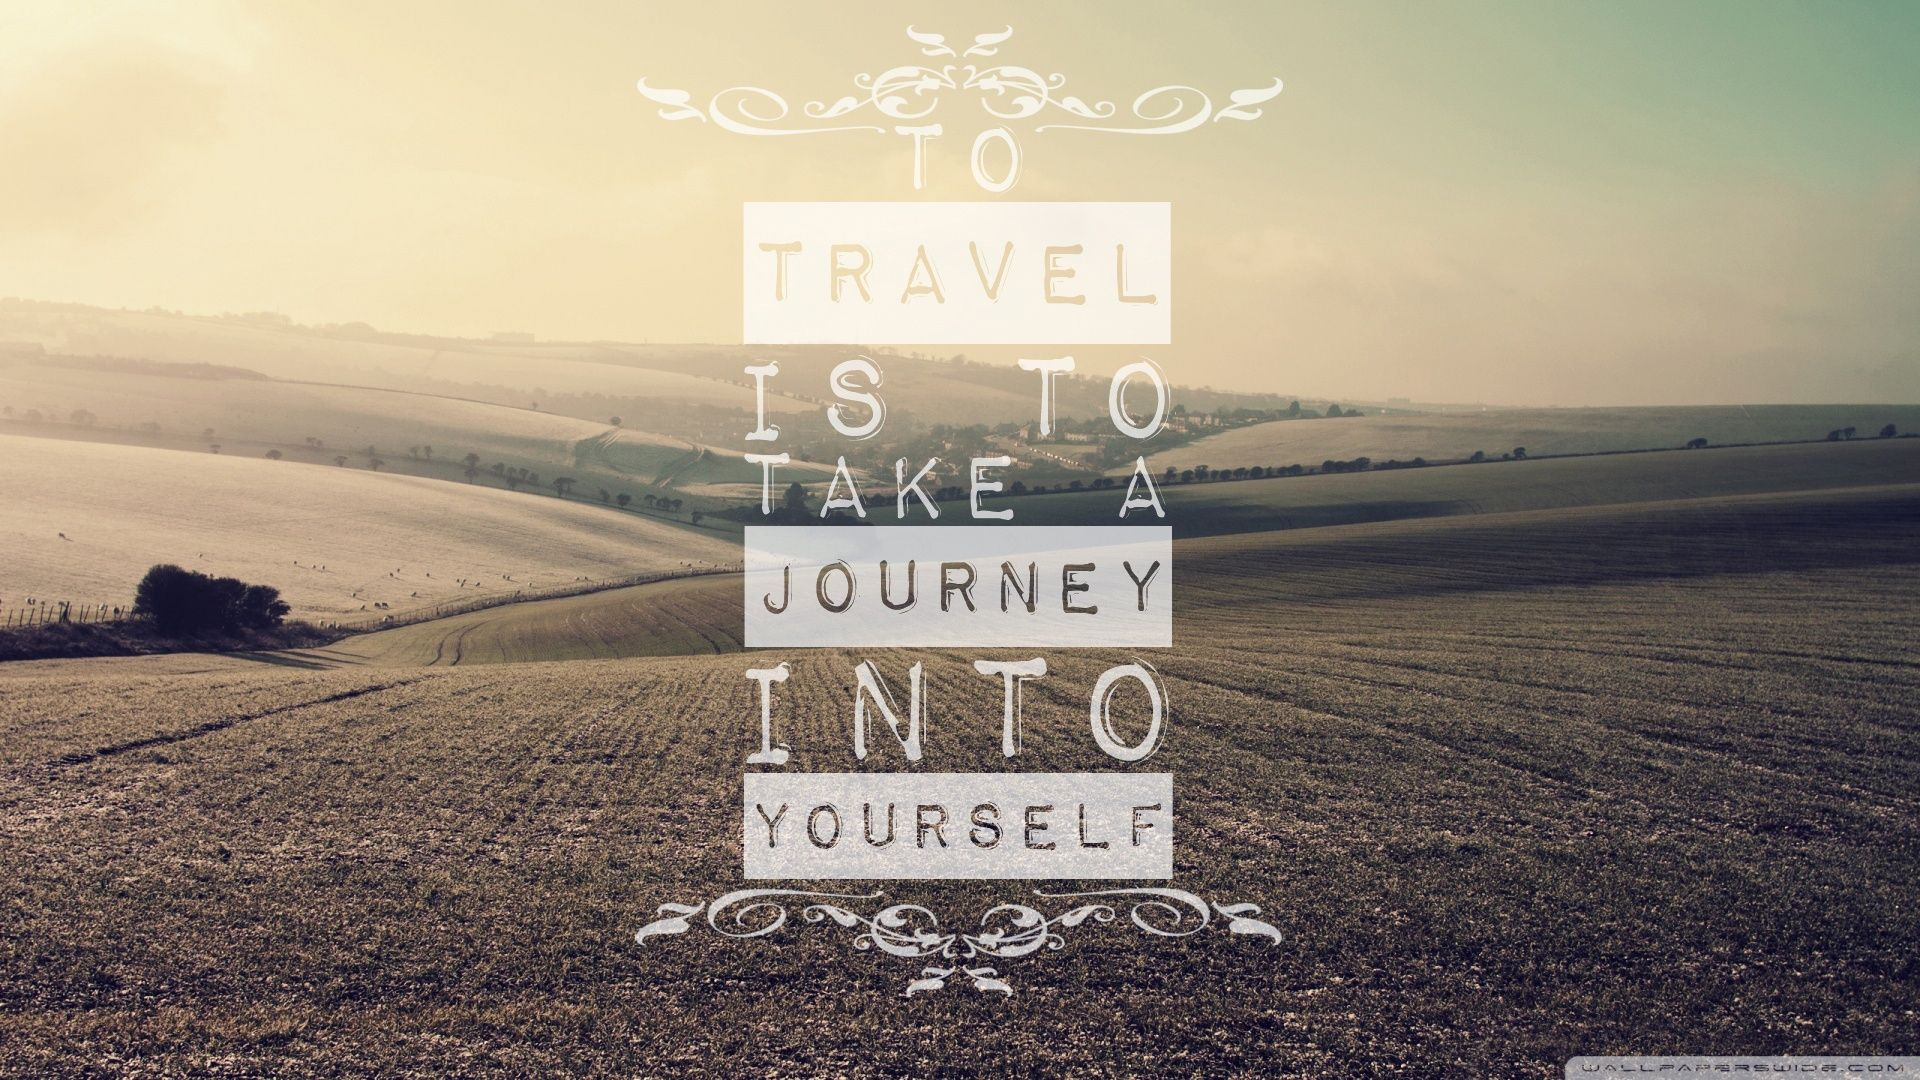 Travel Funny Travel Quotes Travel Wallpaper Hd Wallpaper Quotes